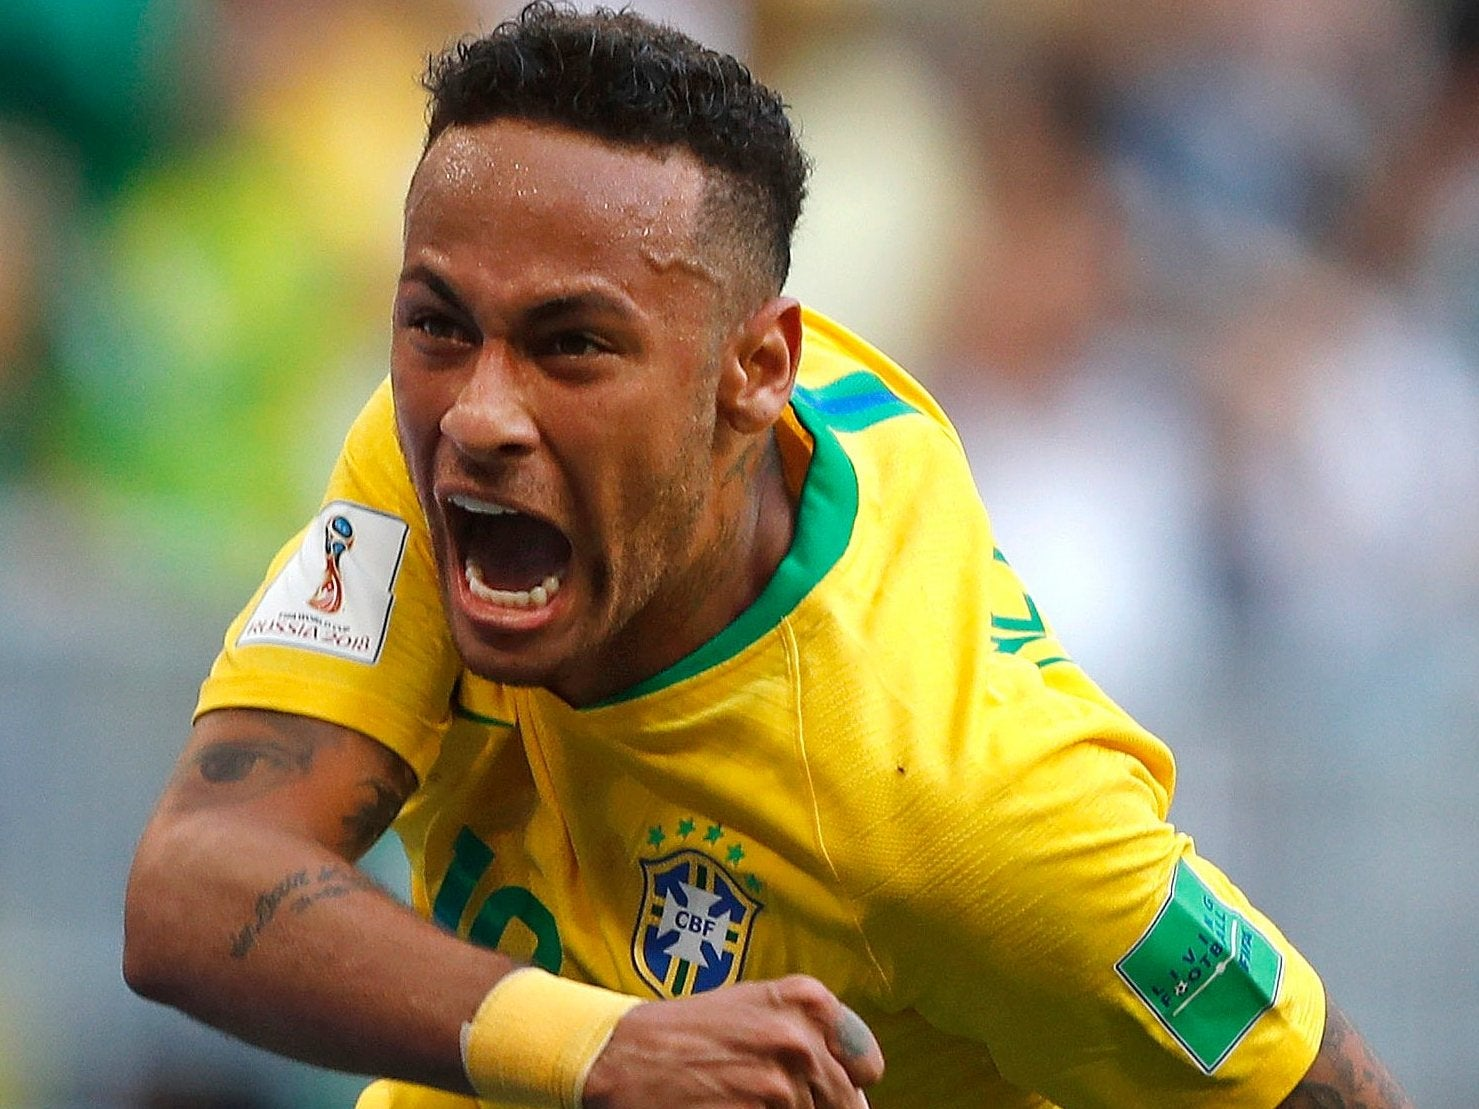 World Cup 2018 LIVE: France vs Uruguay and Brazil vs Belgium, plus latest news from England and Russia ahead of quarter-finals, predictions, updates